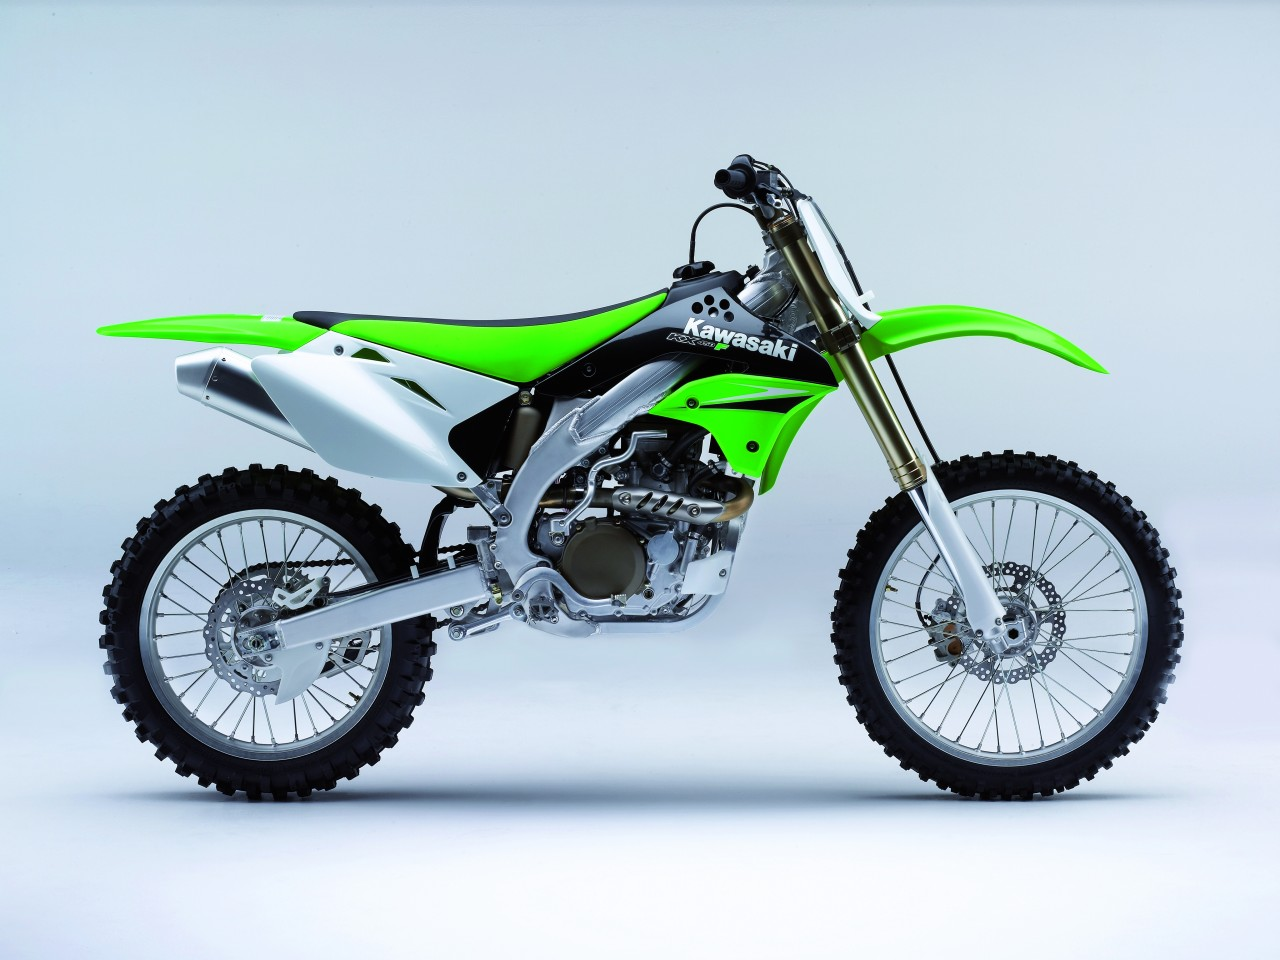 New Motorcycle Motorcycle Wallpaper Kawasaki Kx450f